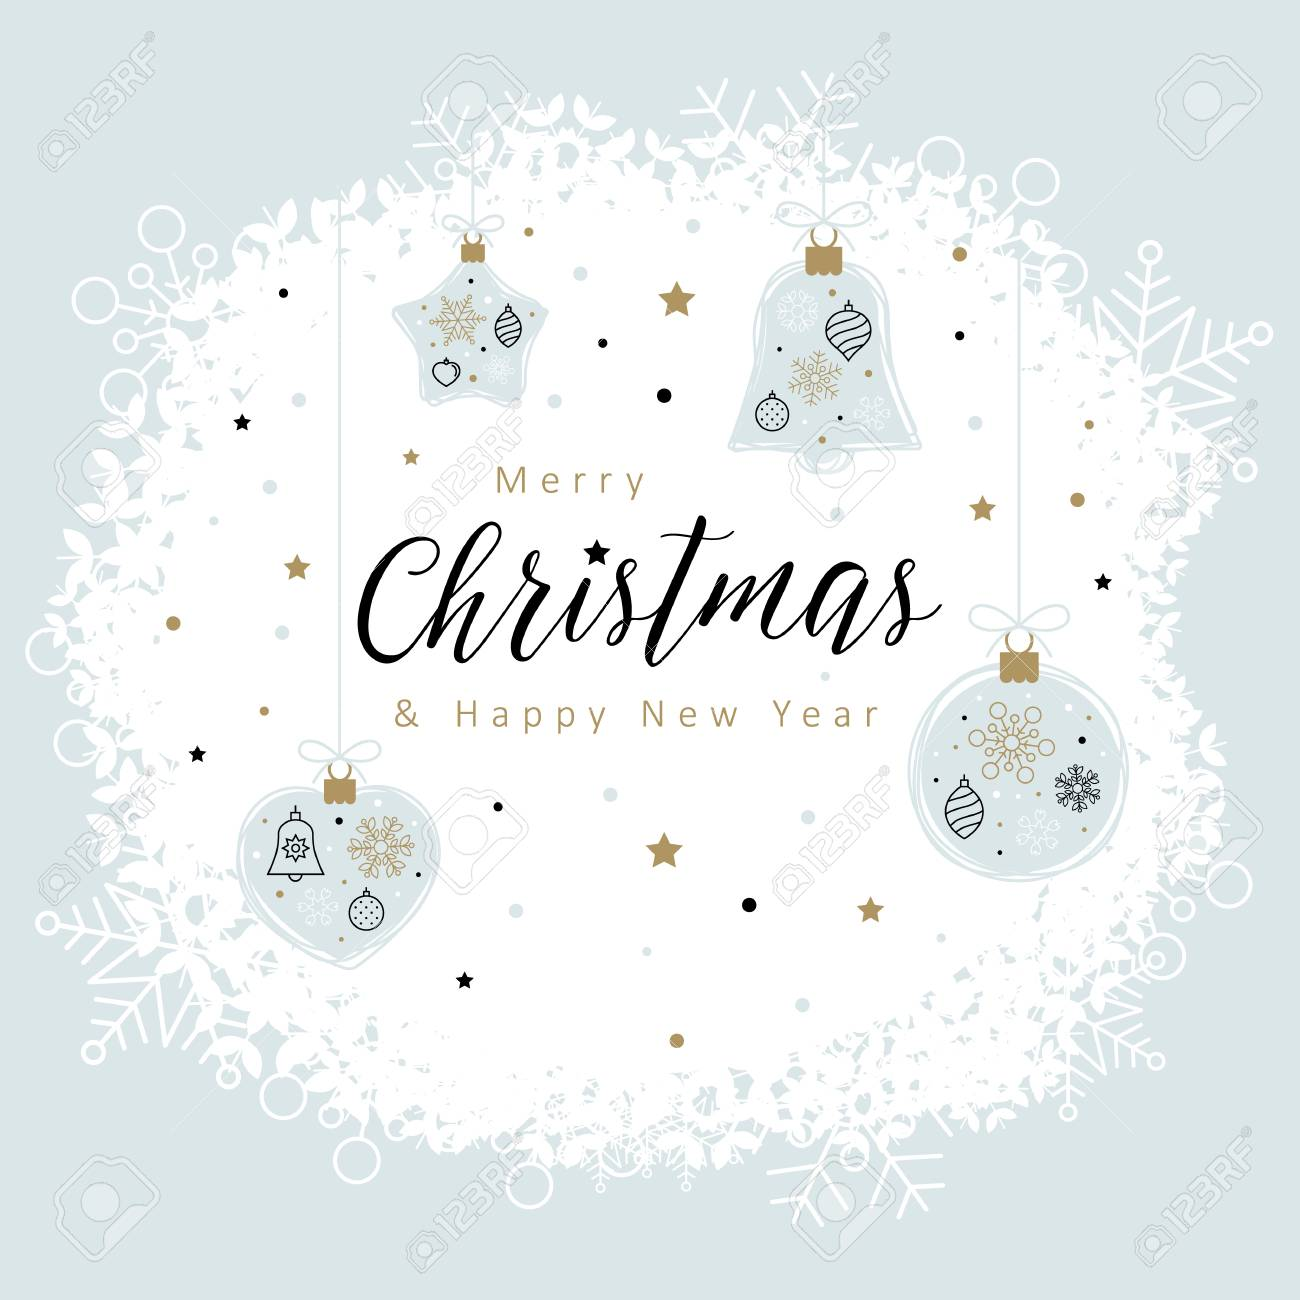 Christmas Card Template.Christmas Card Template With Christmas Decorations Made From